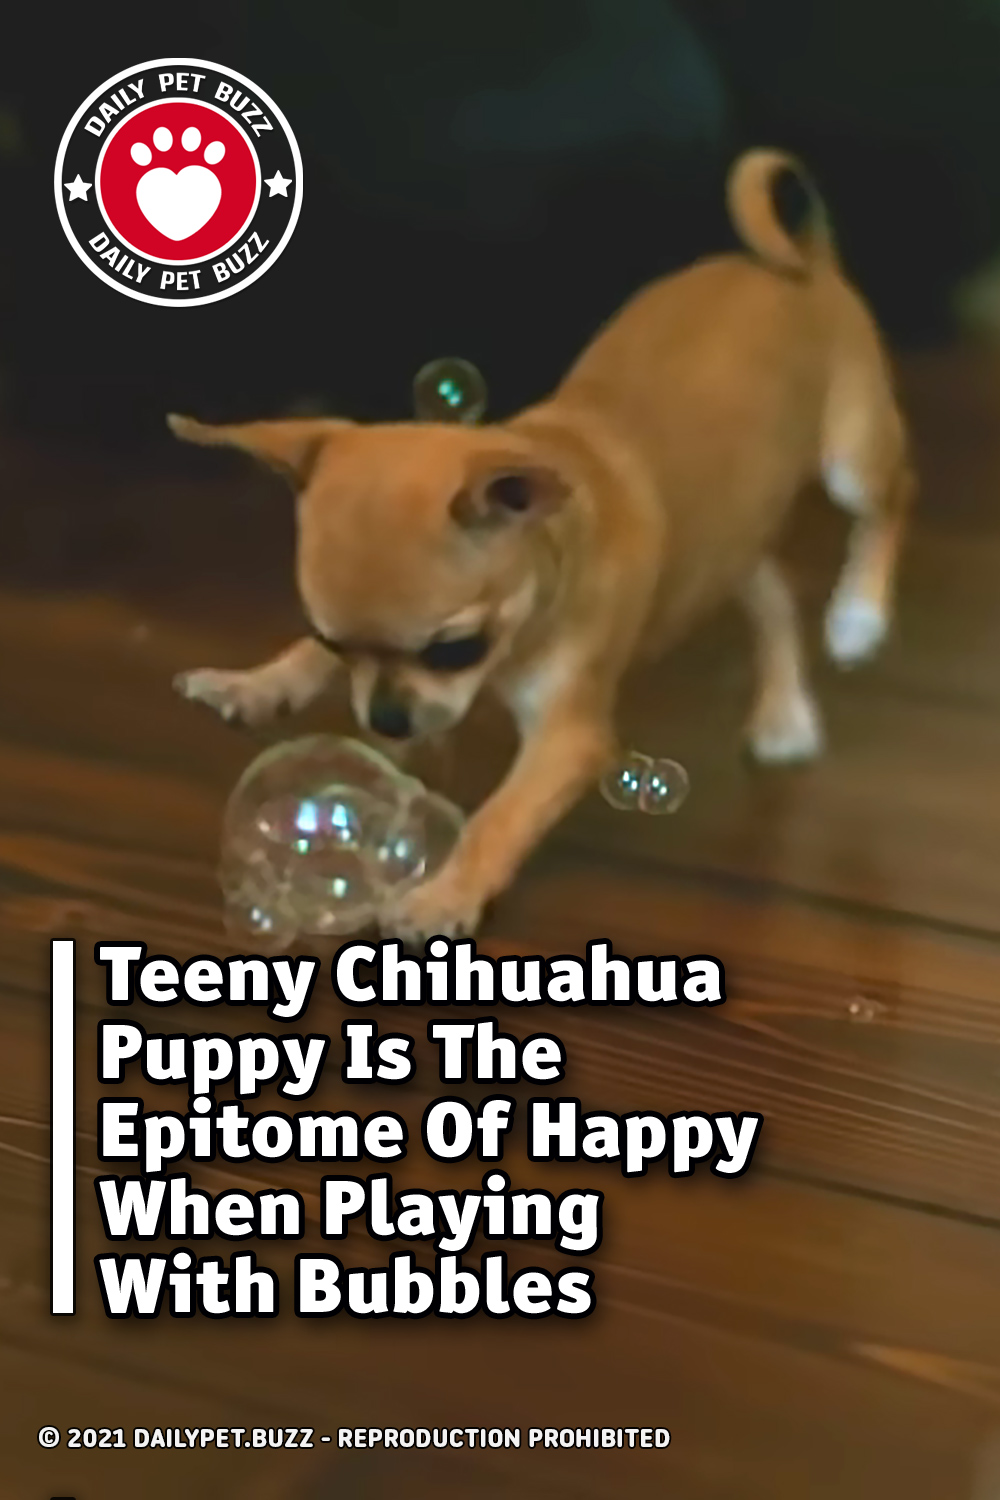 Teeny Chihuahua Puppy Is The Epitome Of Happy When Playing With Bubbles